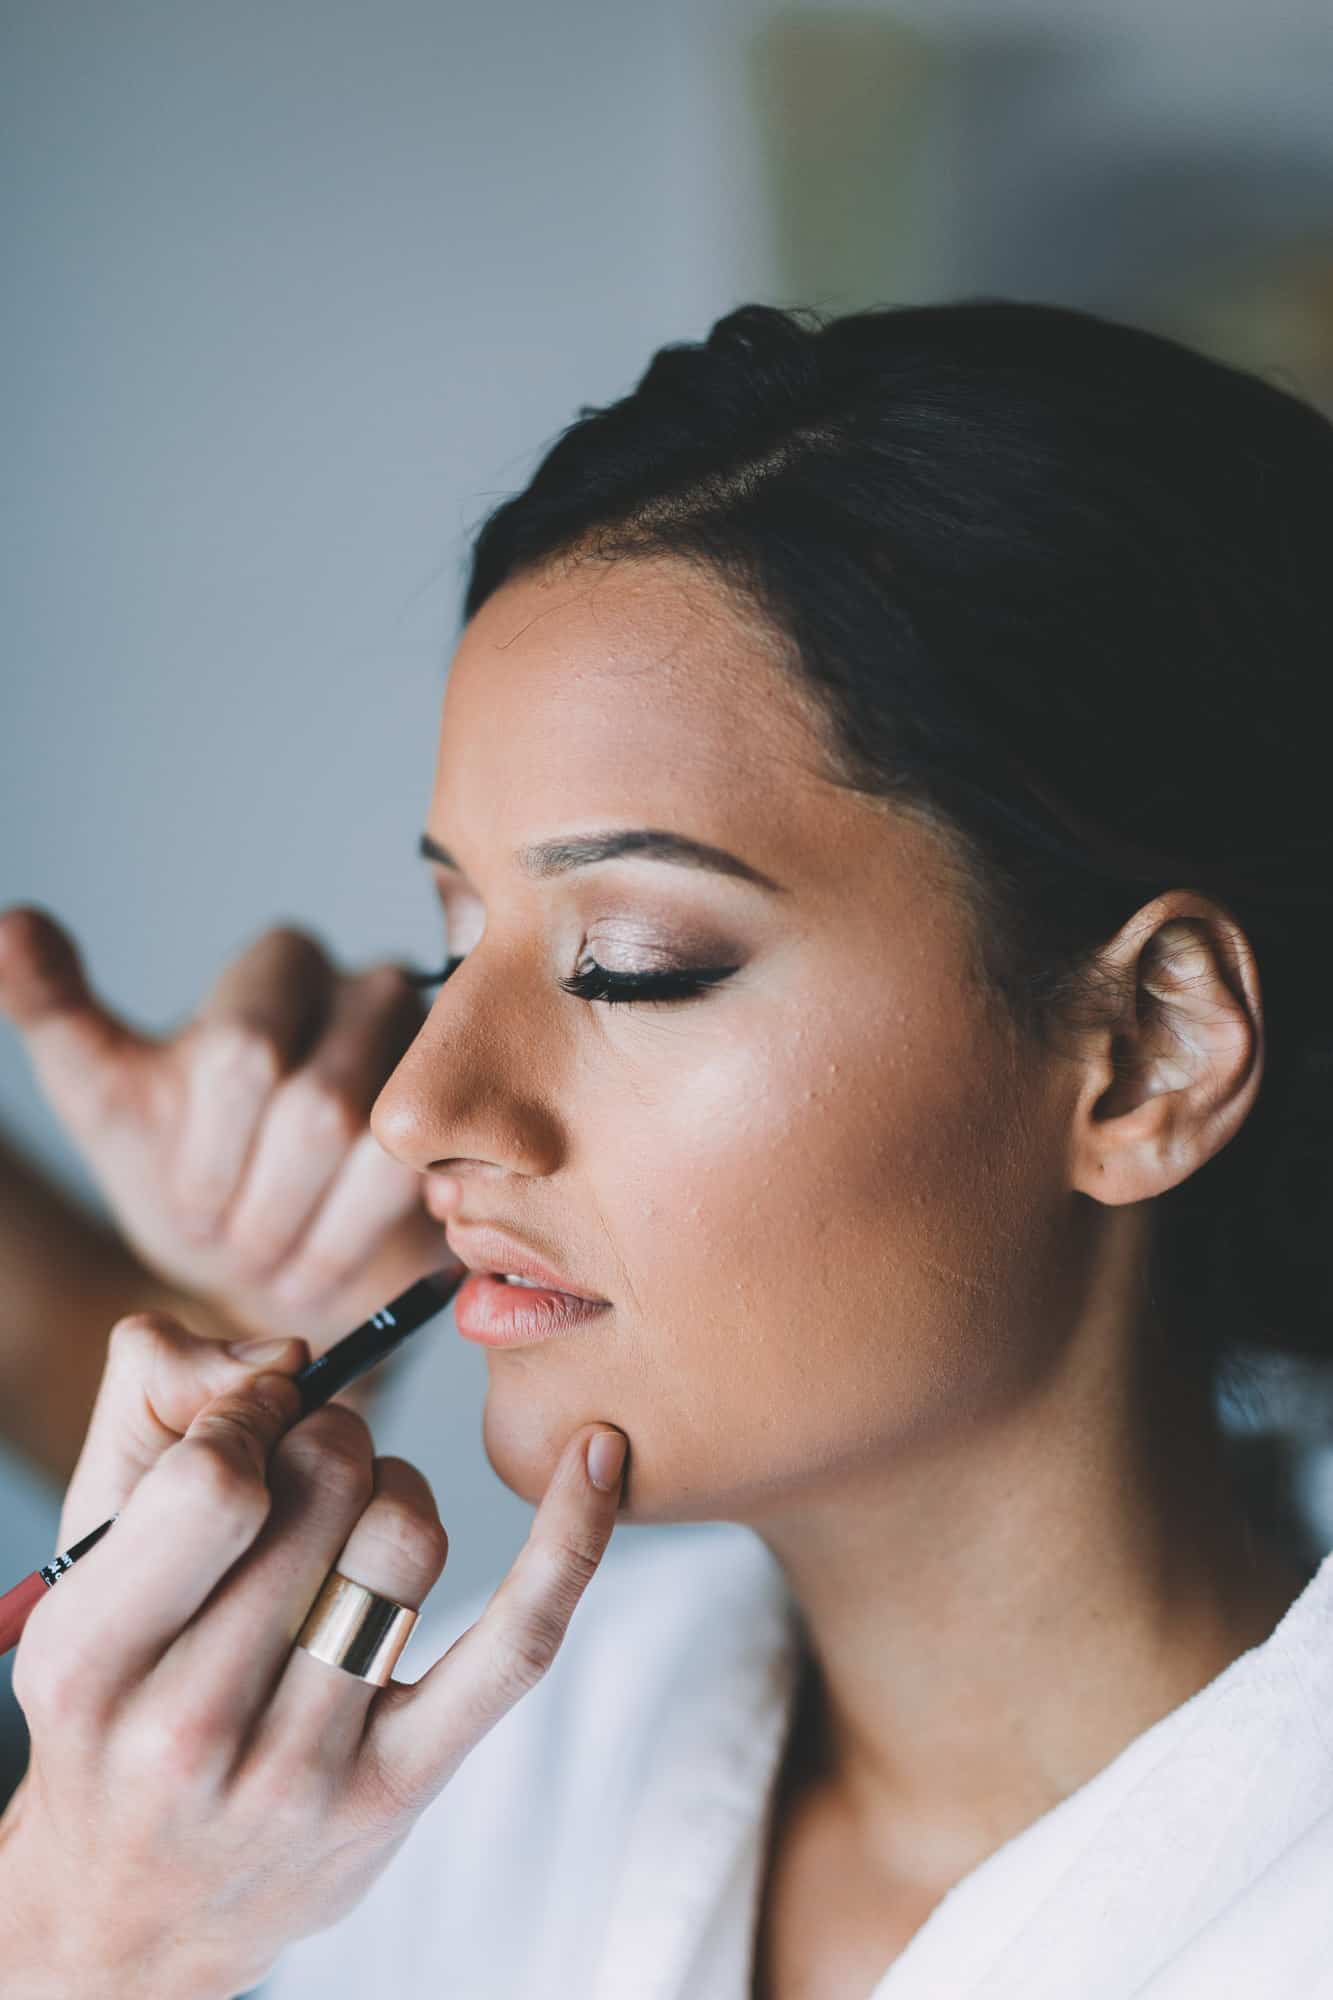 What You Need To Know About Bridal Hair And Makeup Trials